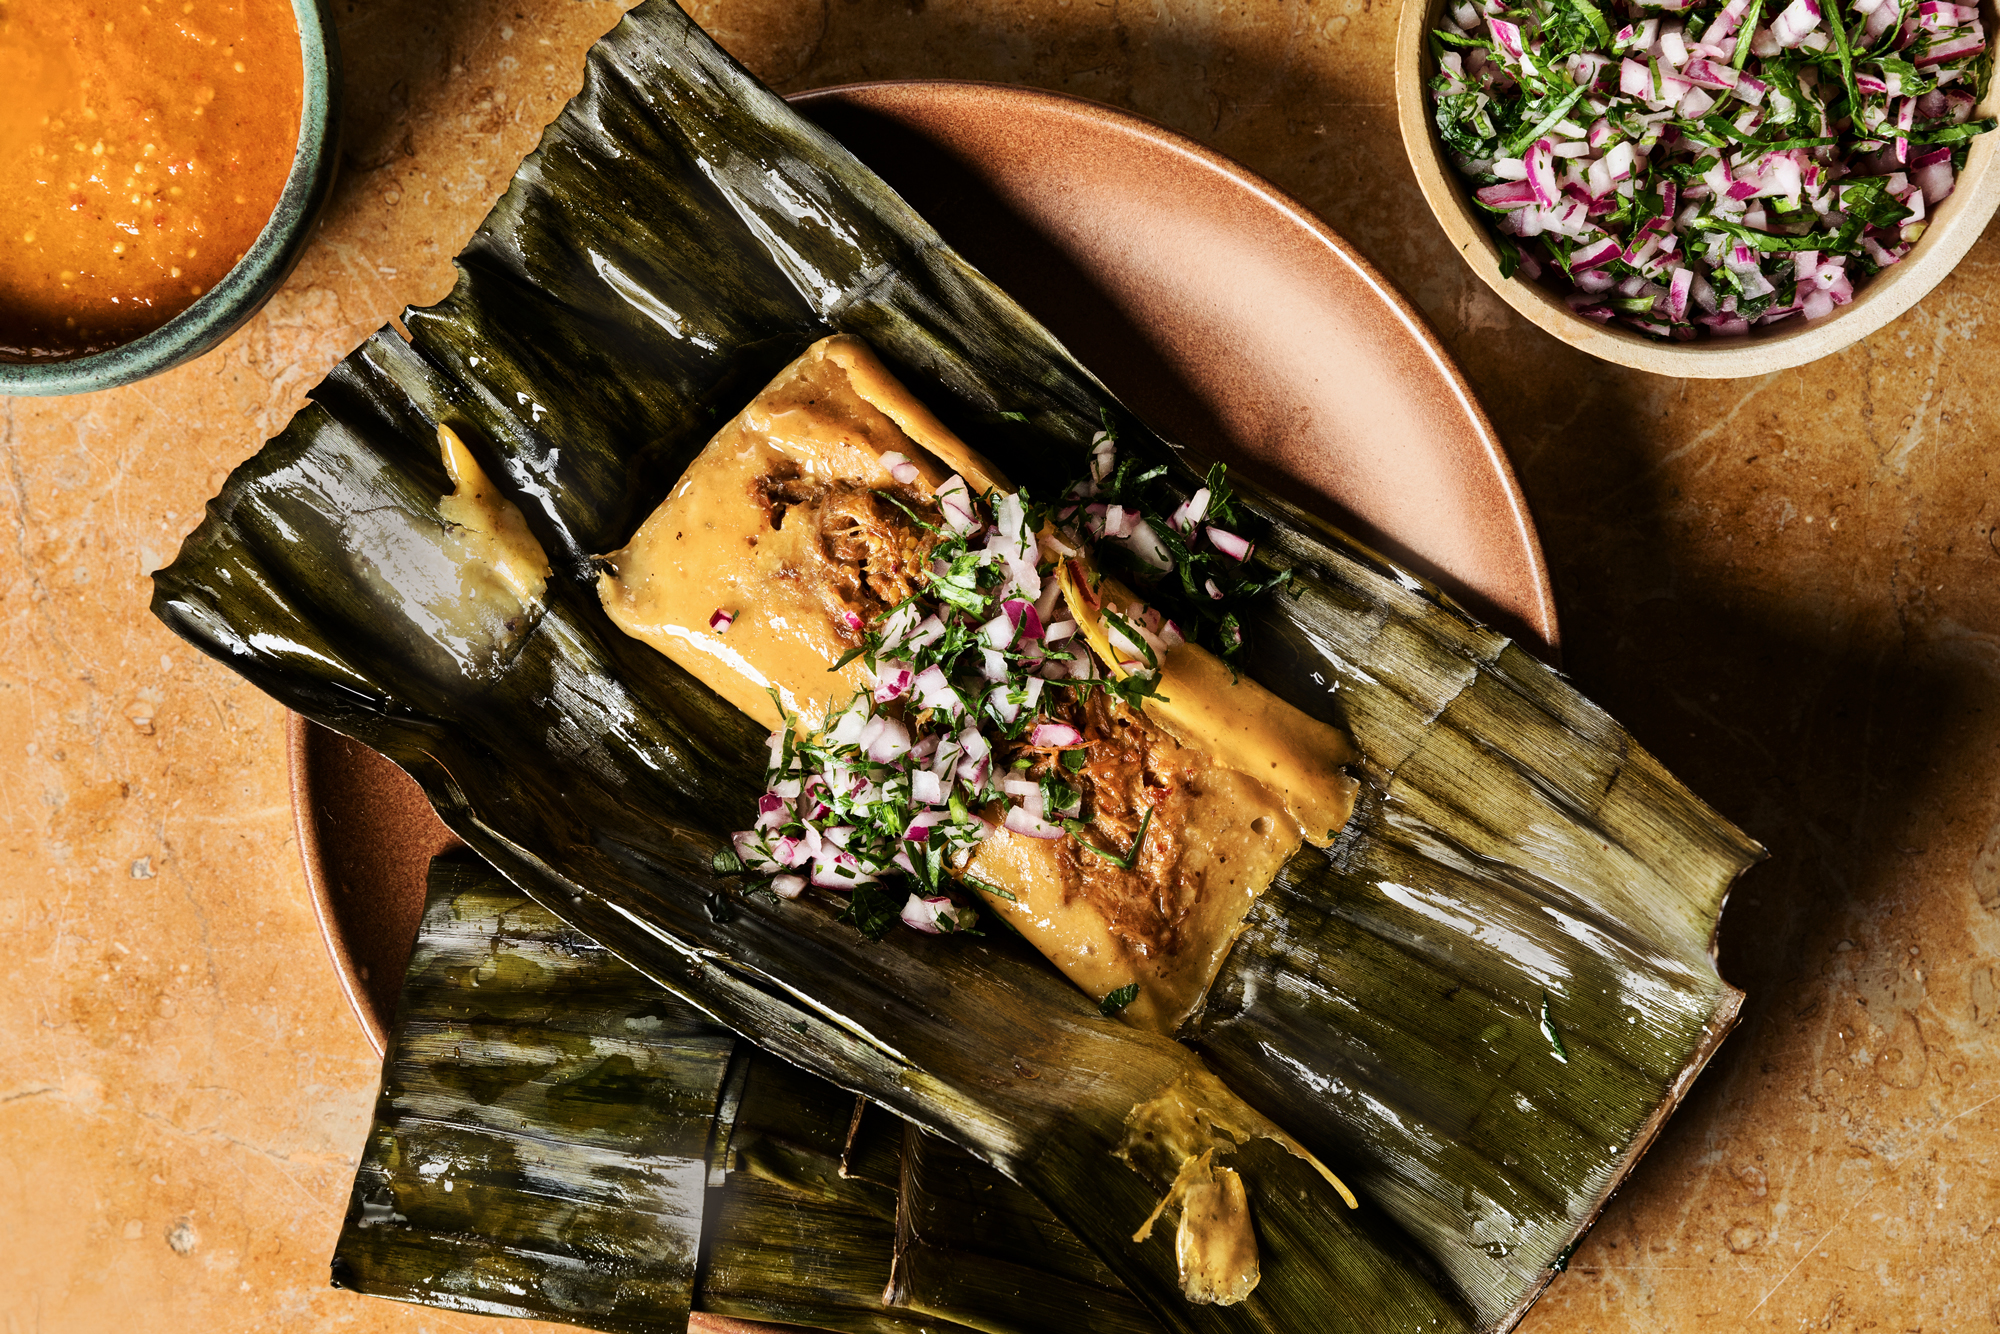 Banana Leaf Wrapped Lamb Shank Tamales with Morita Chile Salsa